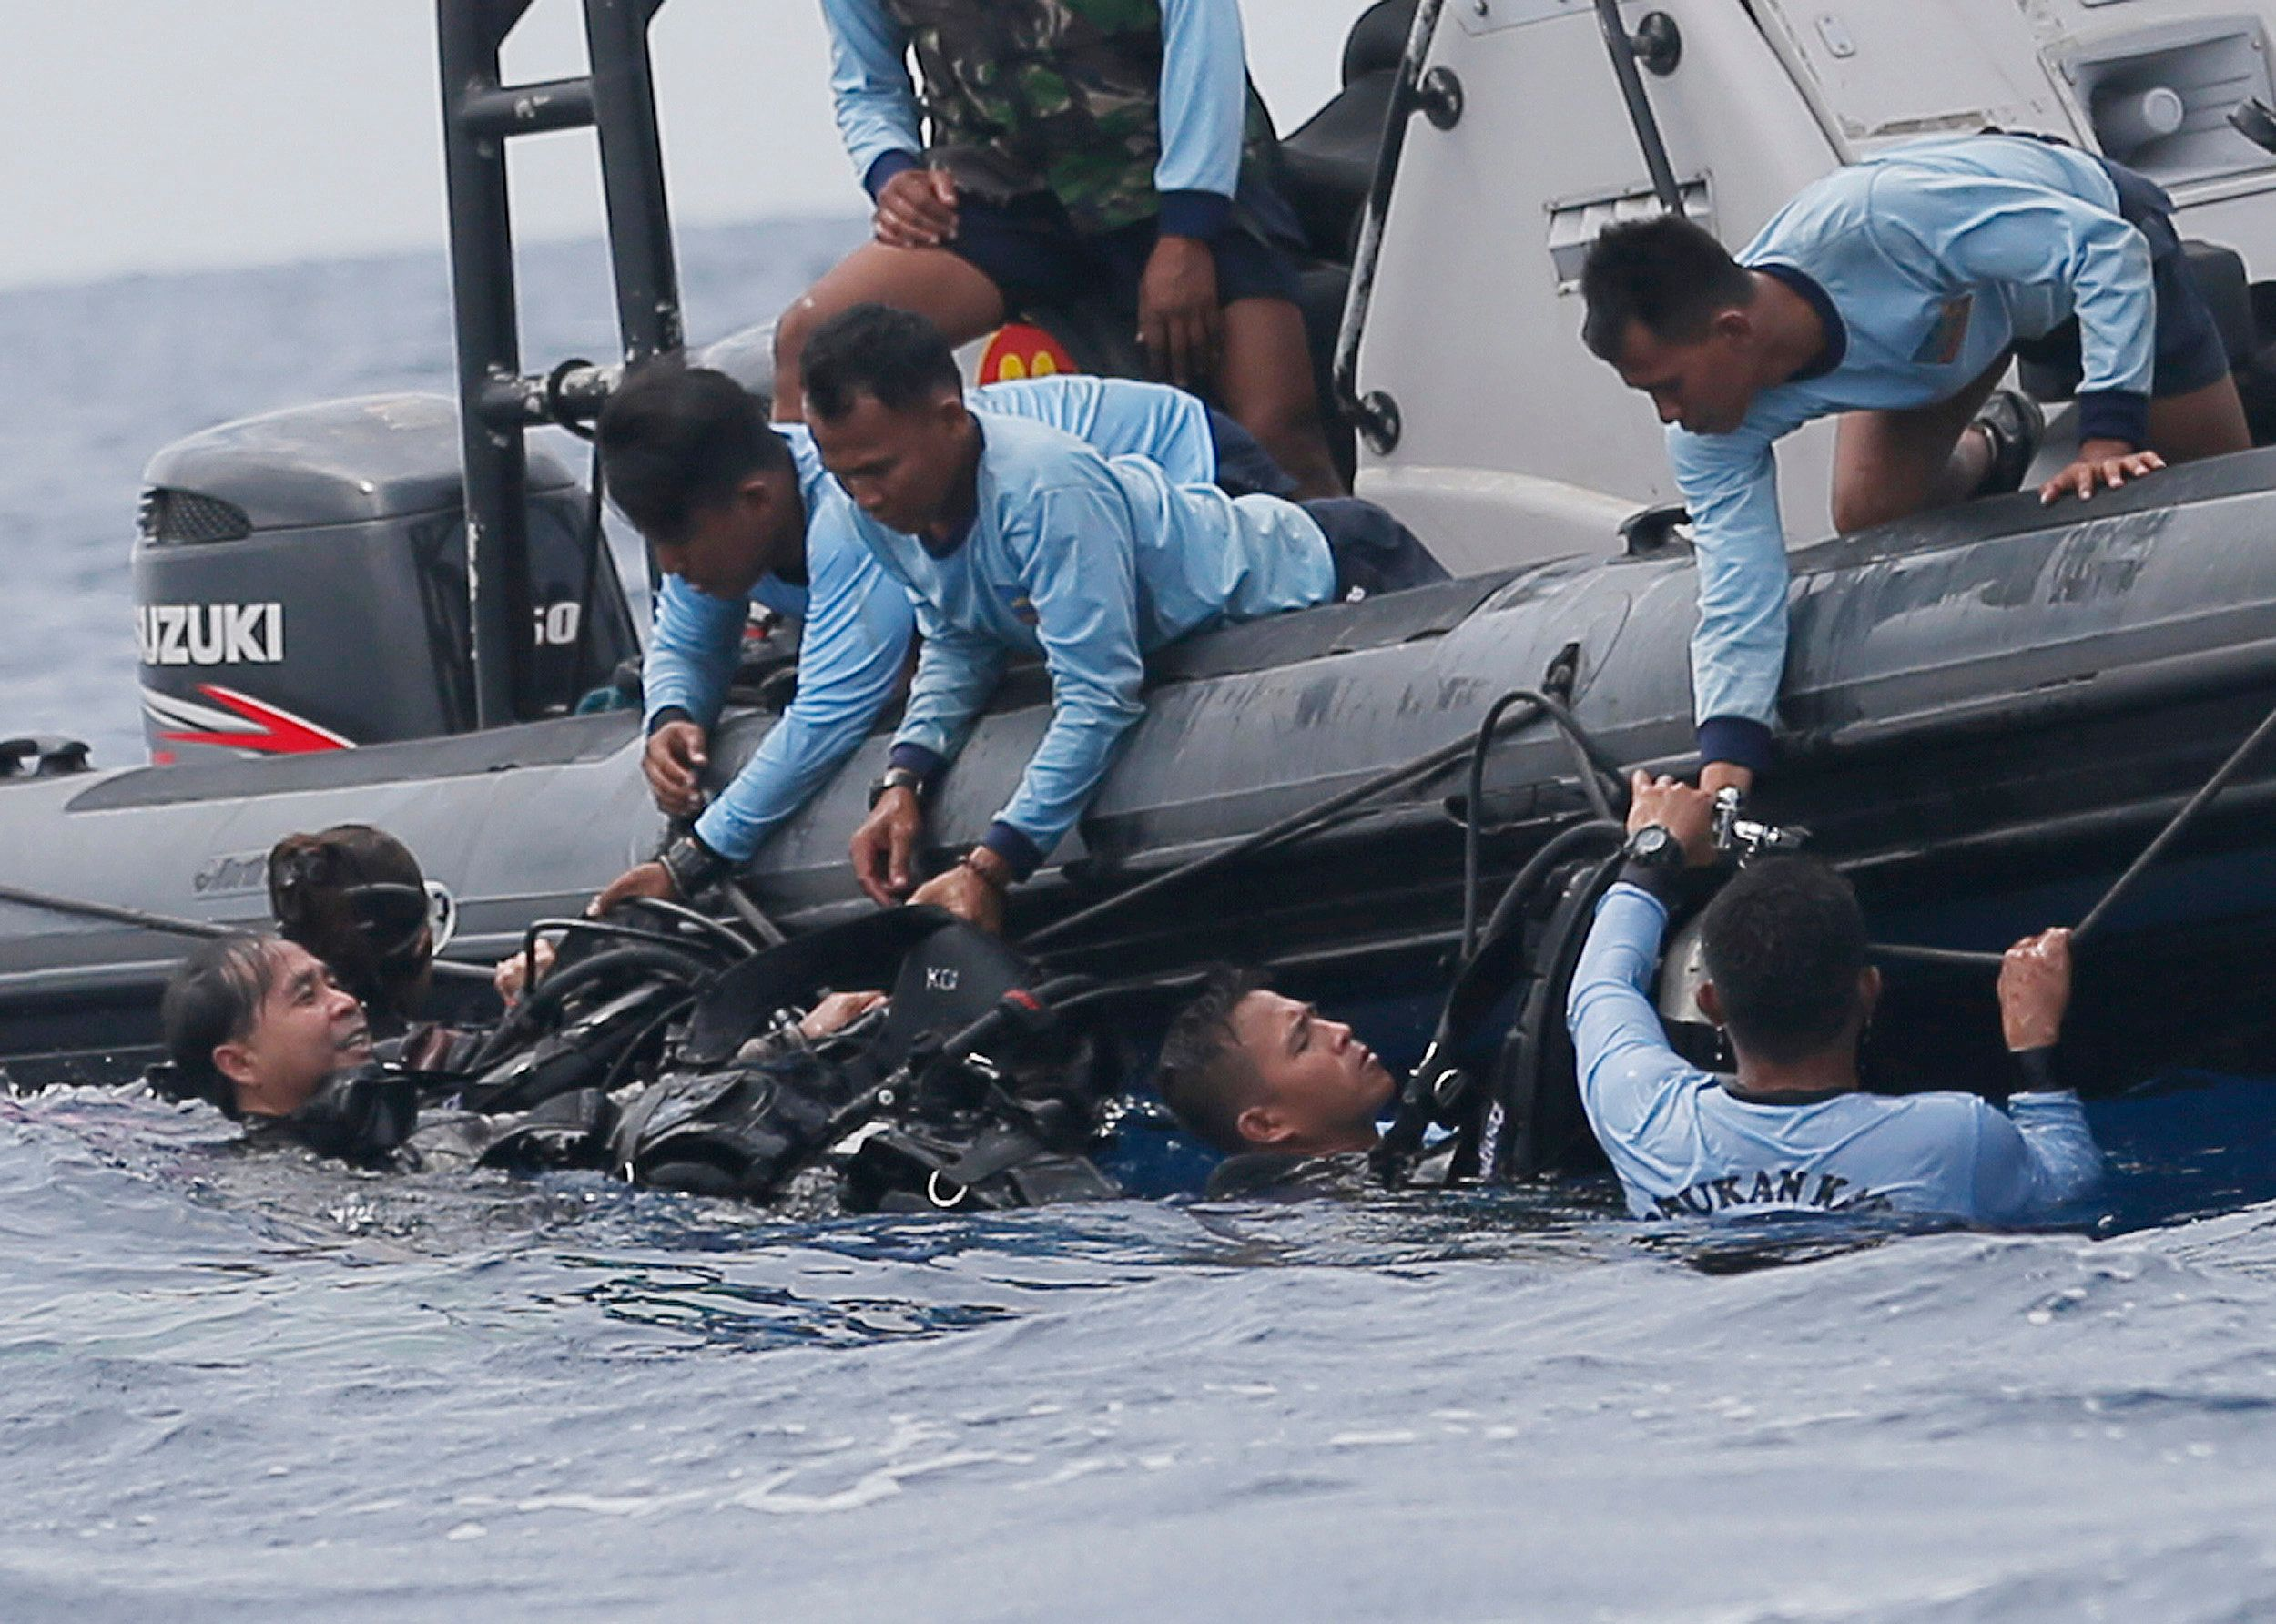 Westlake Legal Group 5c3c114c20000053006bb435 Black Box From Lion Air Jet That Crashed In October Finally Found